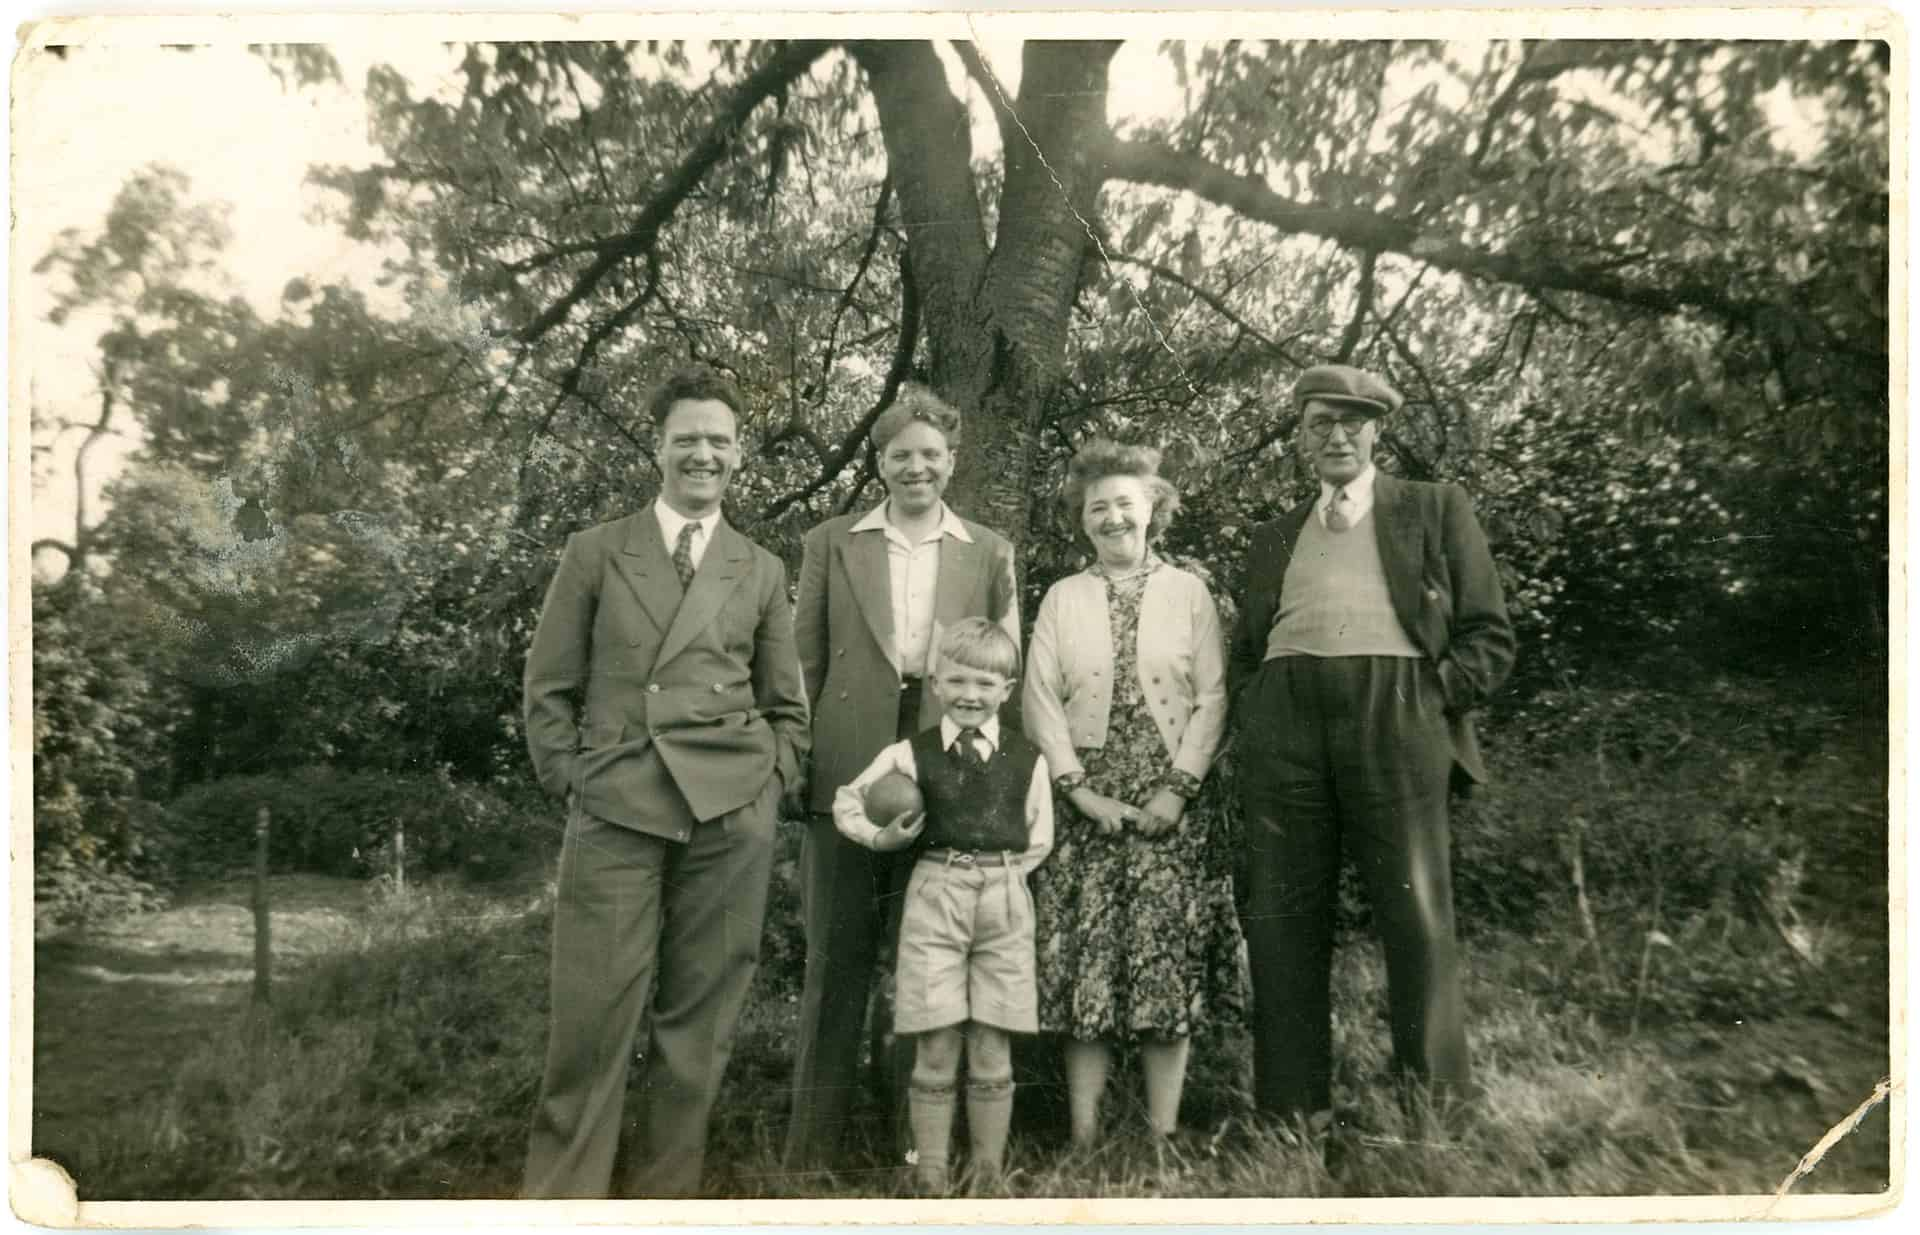 My dad, Uncle Ron, Nanny Lil, Uncle Tom, and me 1950s